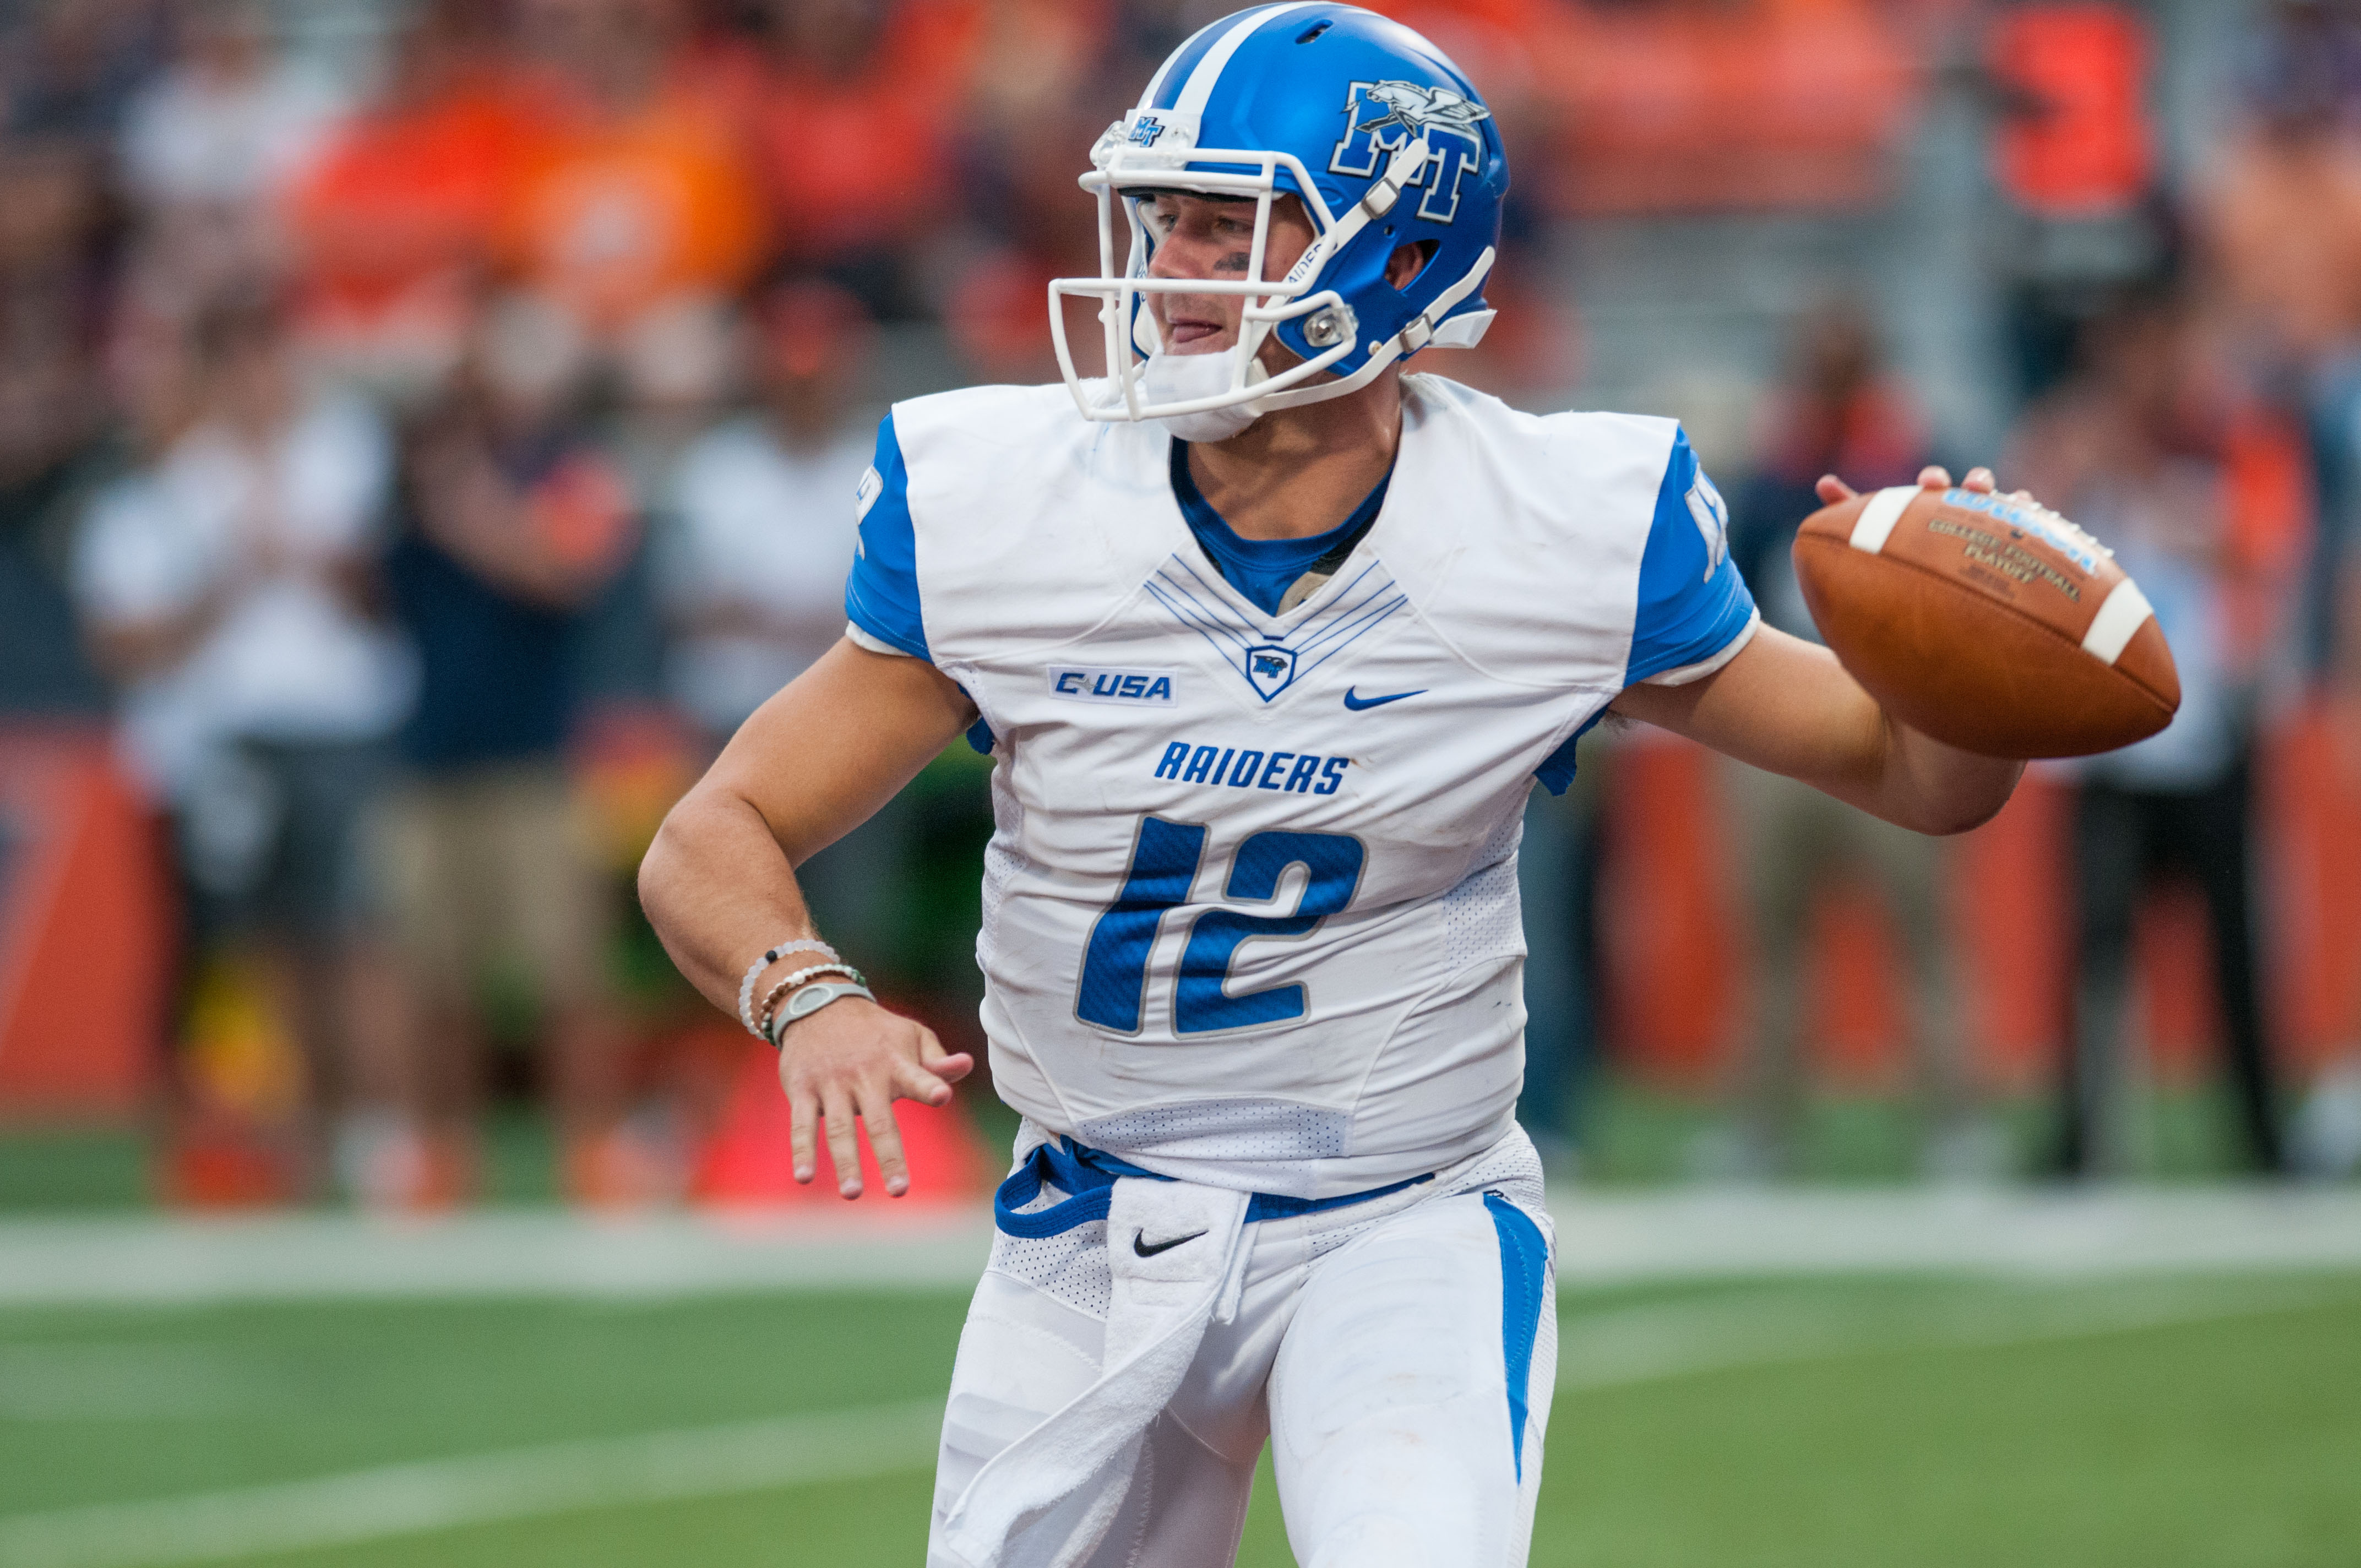 Middle Tennessee quarterback Brent Stockstill (12) throws the ball during the third quarter of an NCAA football game against Illinois Saturday, Sept. 26, 2015 at Memorial Stadium in Champaign, Ill.  Illinois won 27-25. (AP Photo/Bradley Leeb)